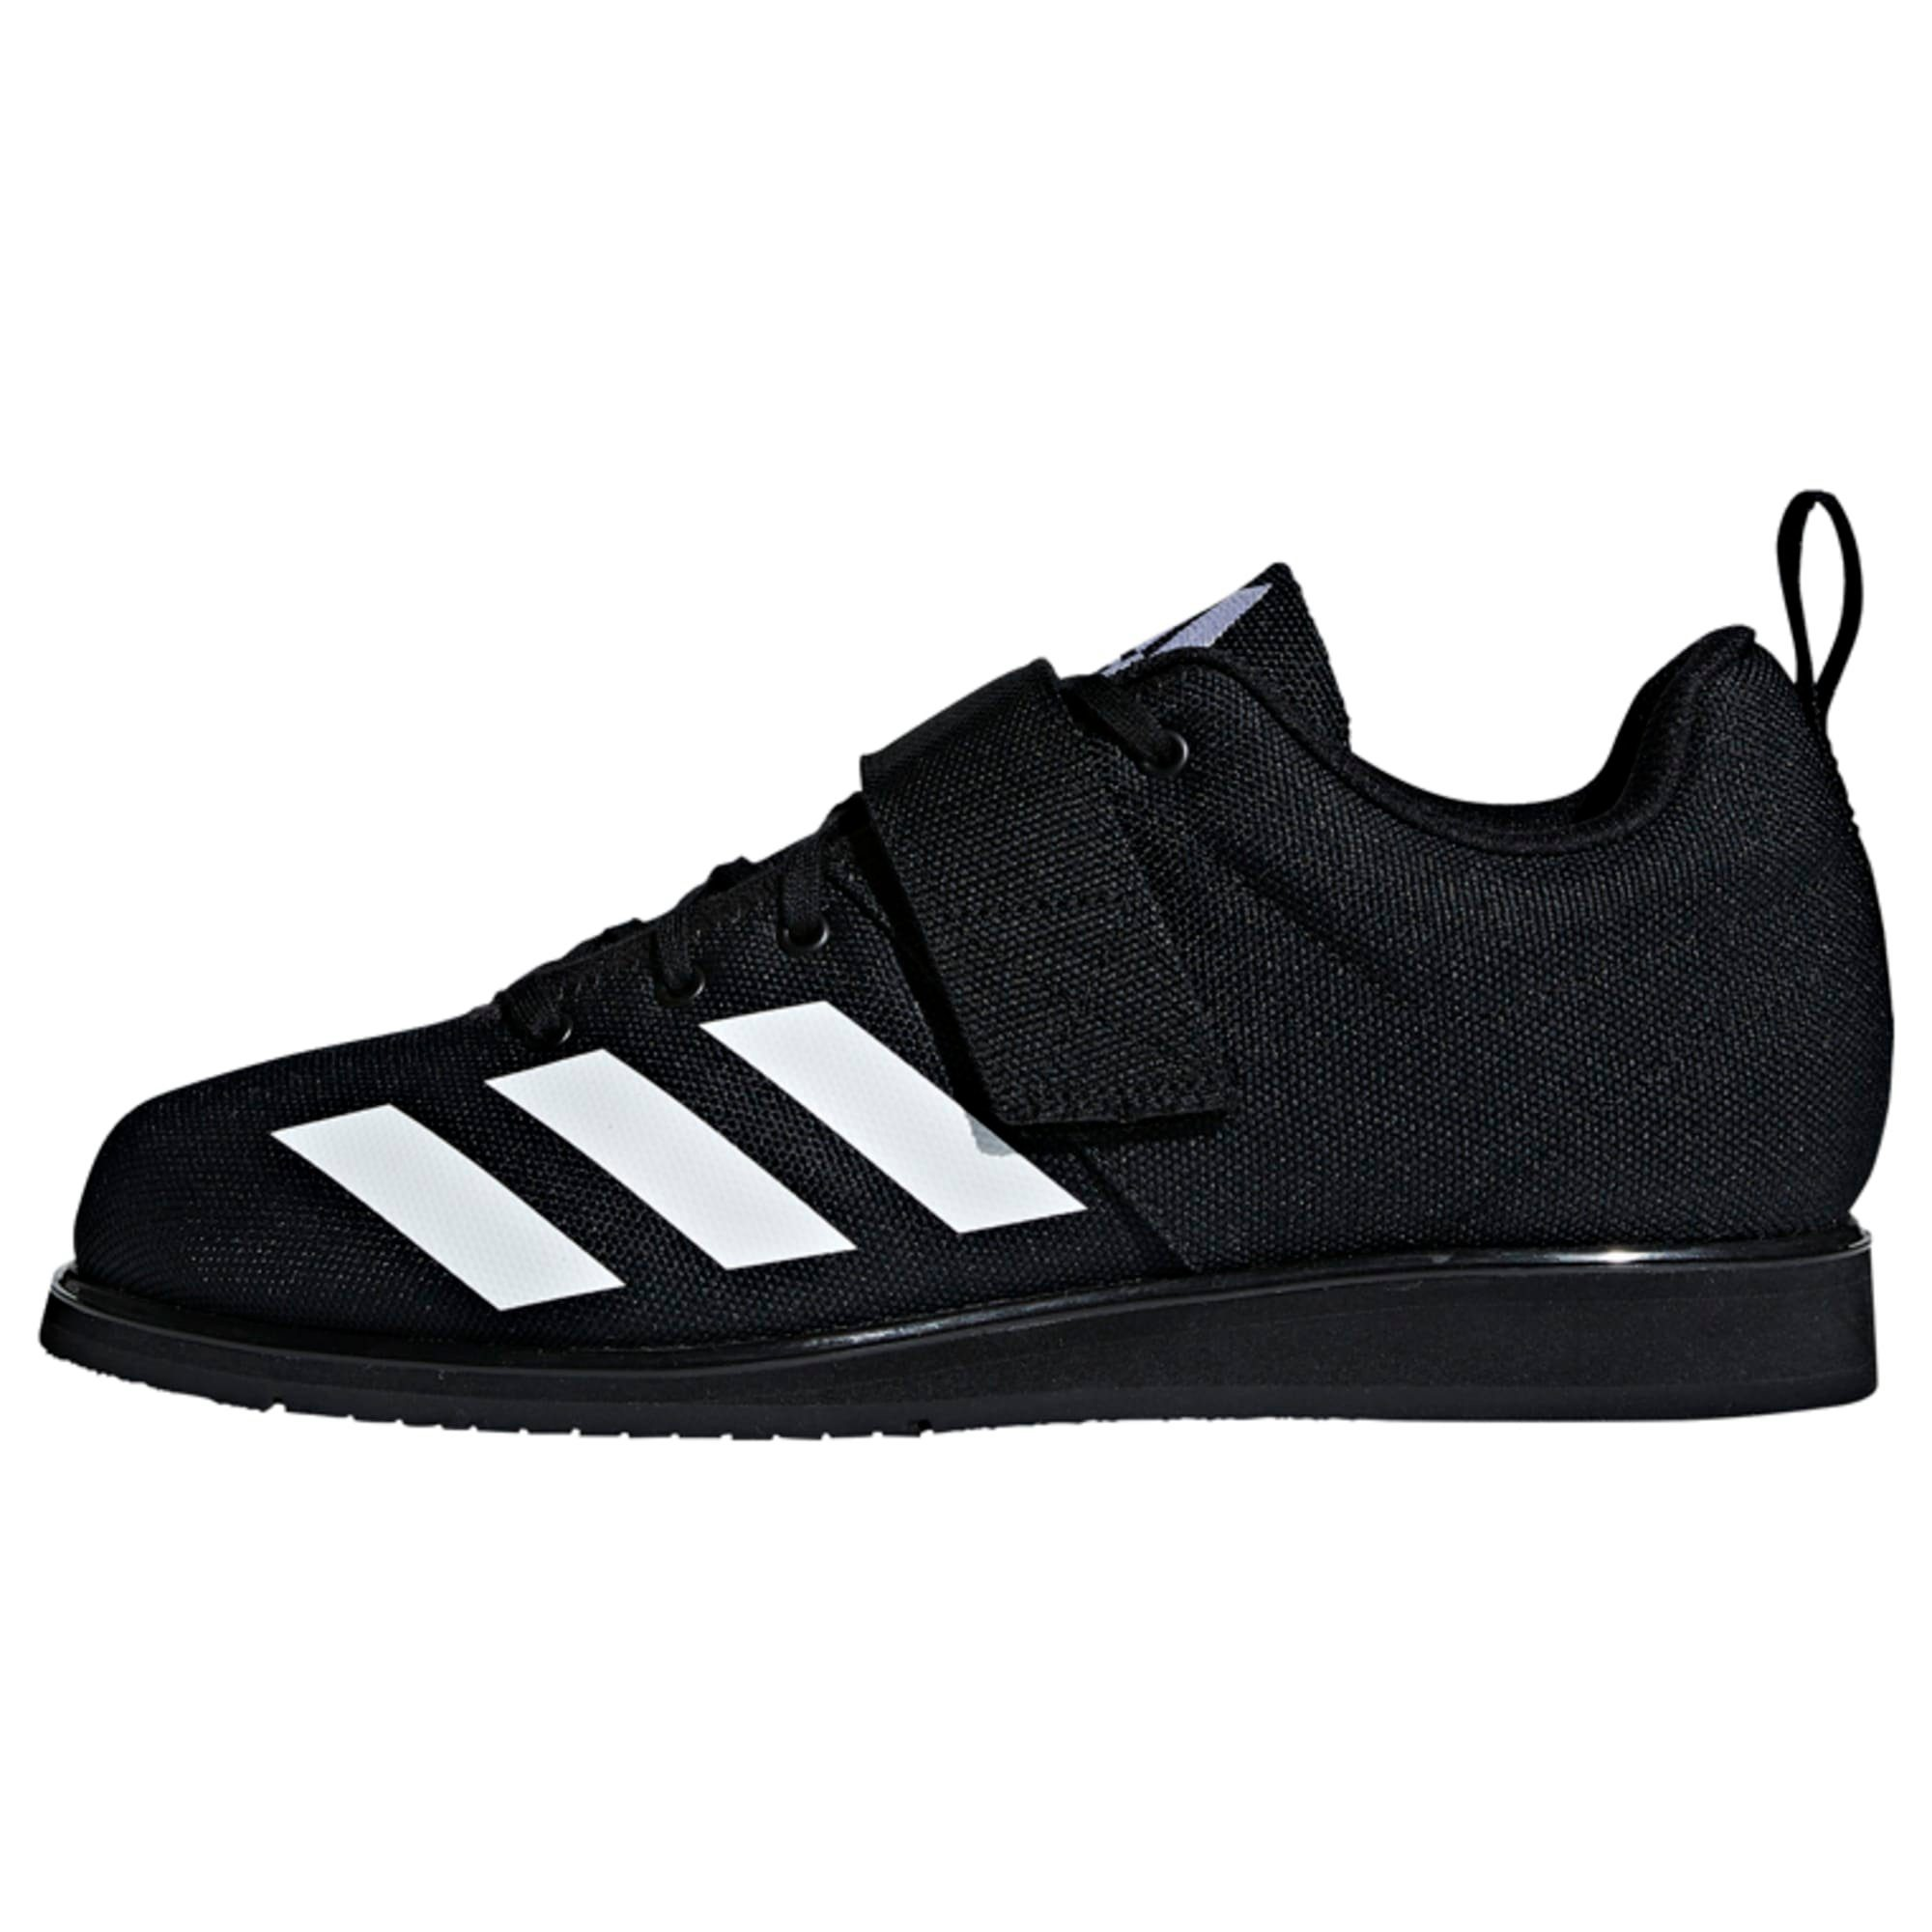 aus online »Powerlift 4 Performance Trainingsschuh adidas Schuh« Canvas kaufenOTTO PowerliftObermaterial lFKJT1c